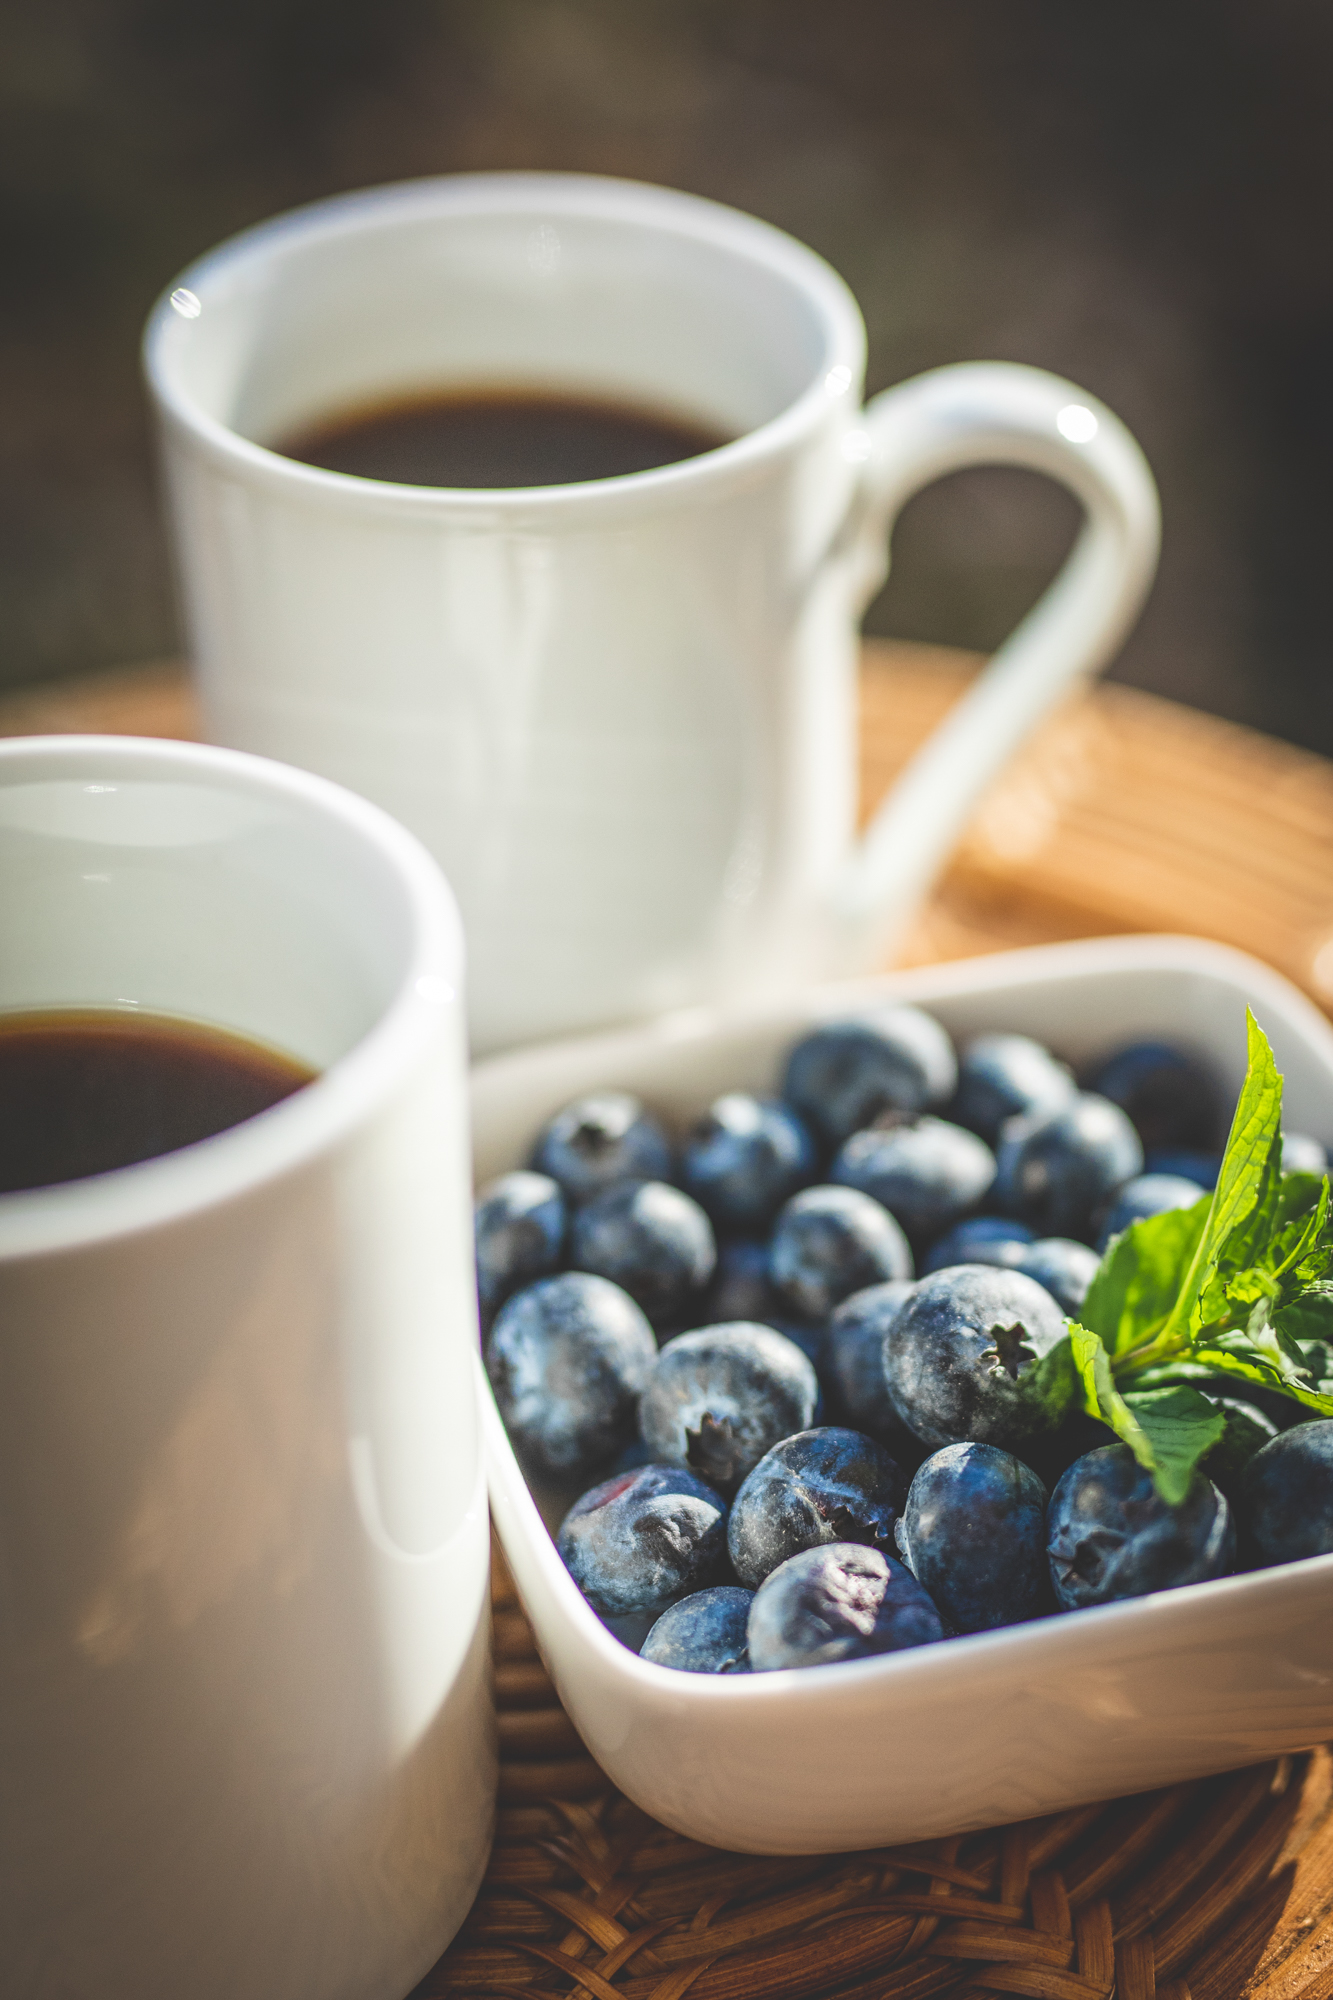 blueberries-and-coffee.jpg